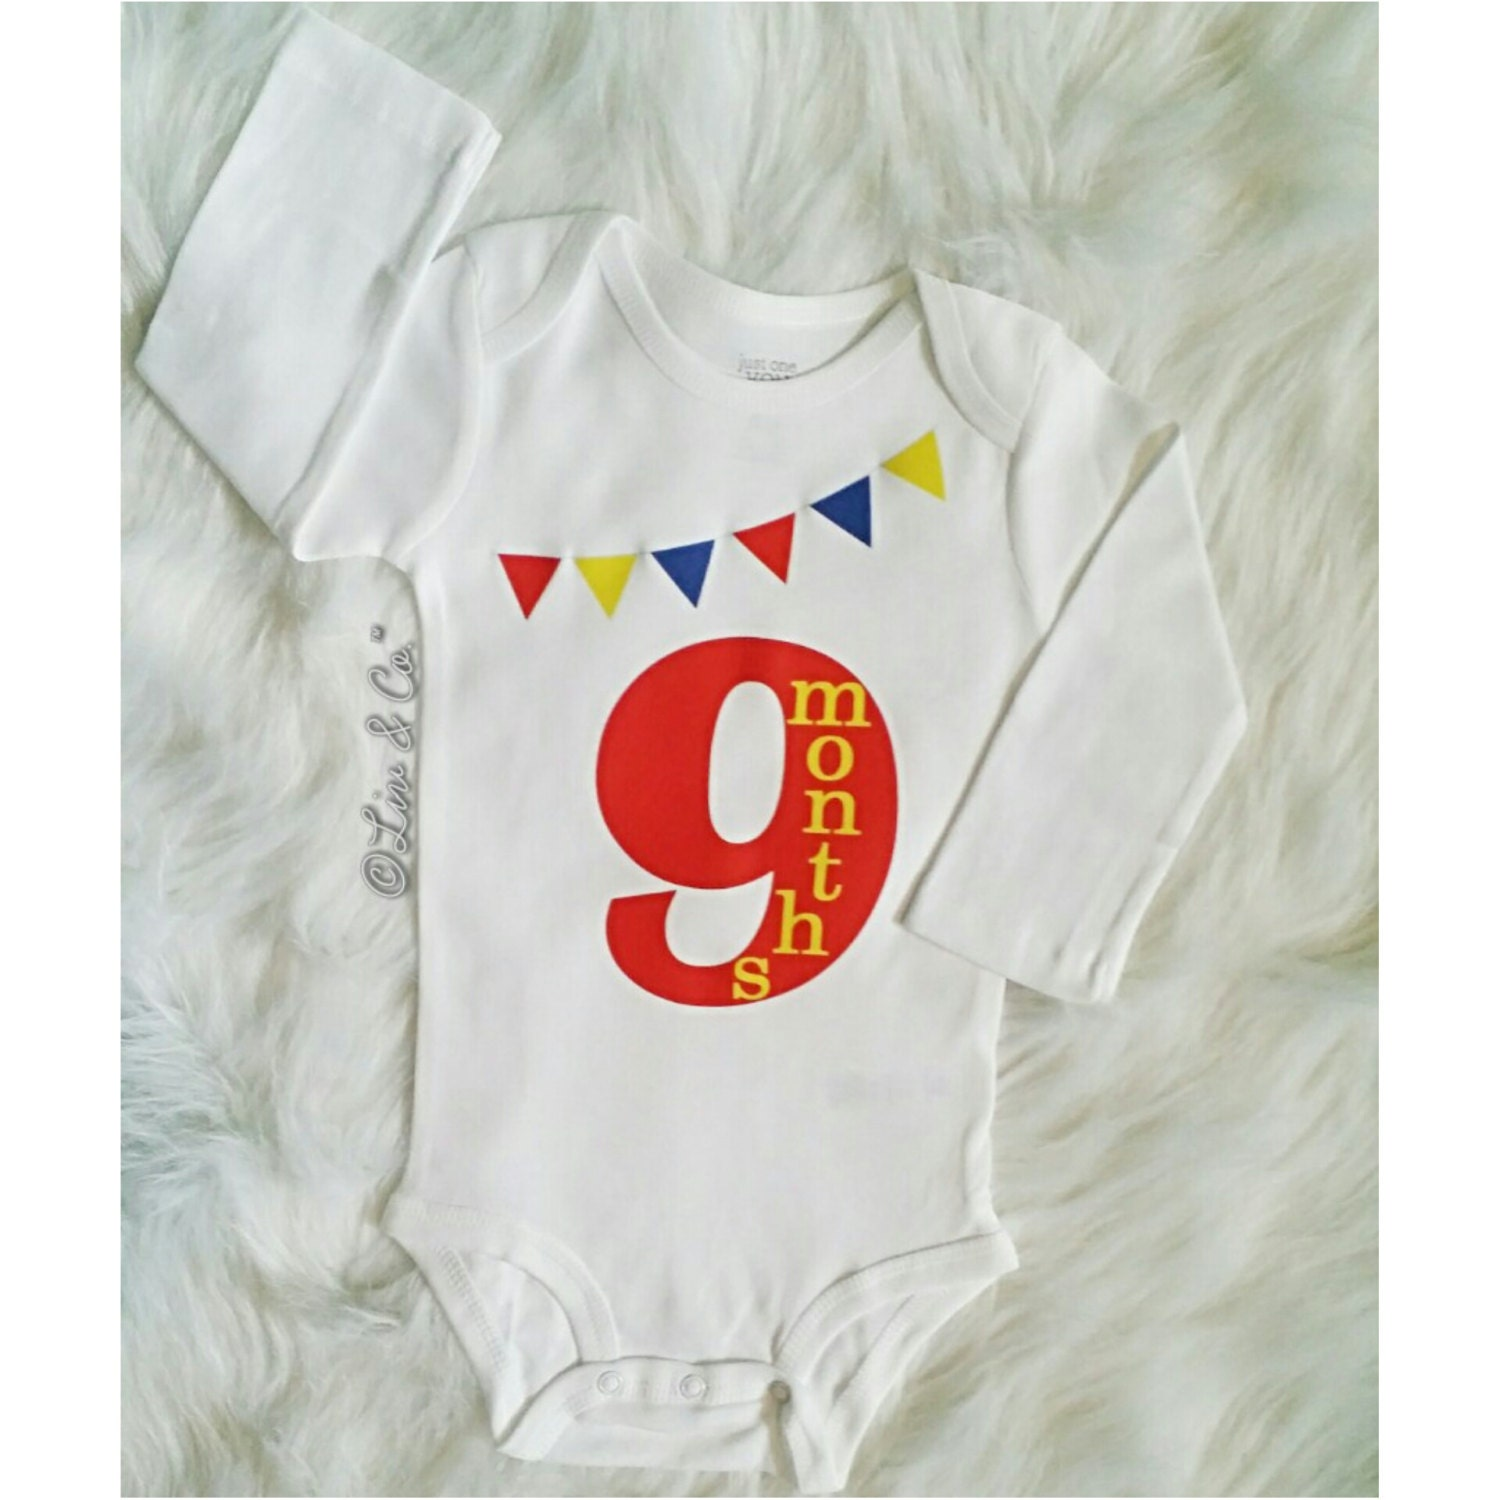 Baby Boy Clothes Baby Girl Clothes 9 Months Old Baby Outfit